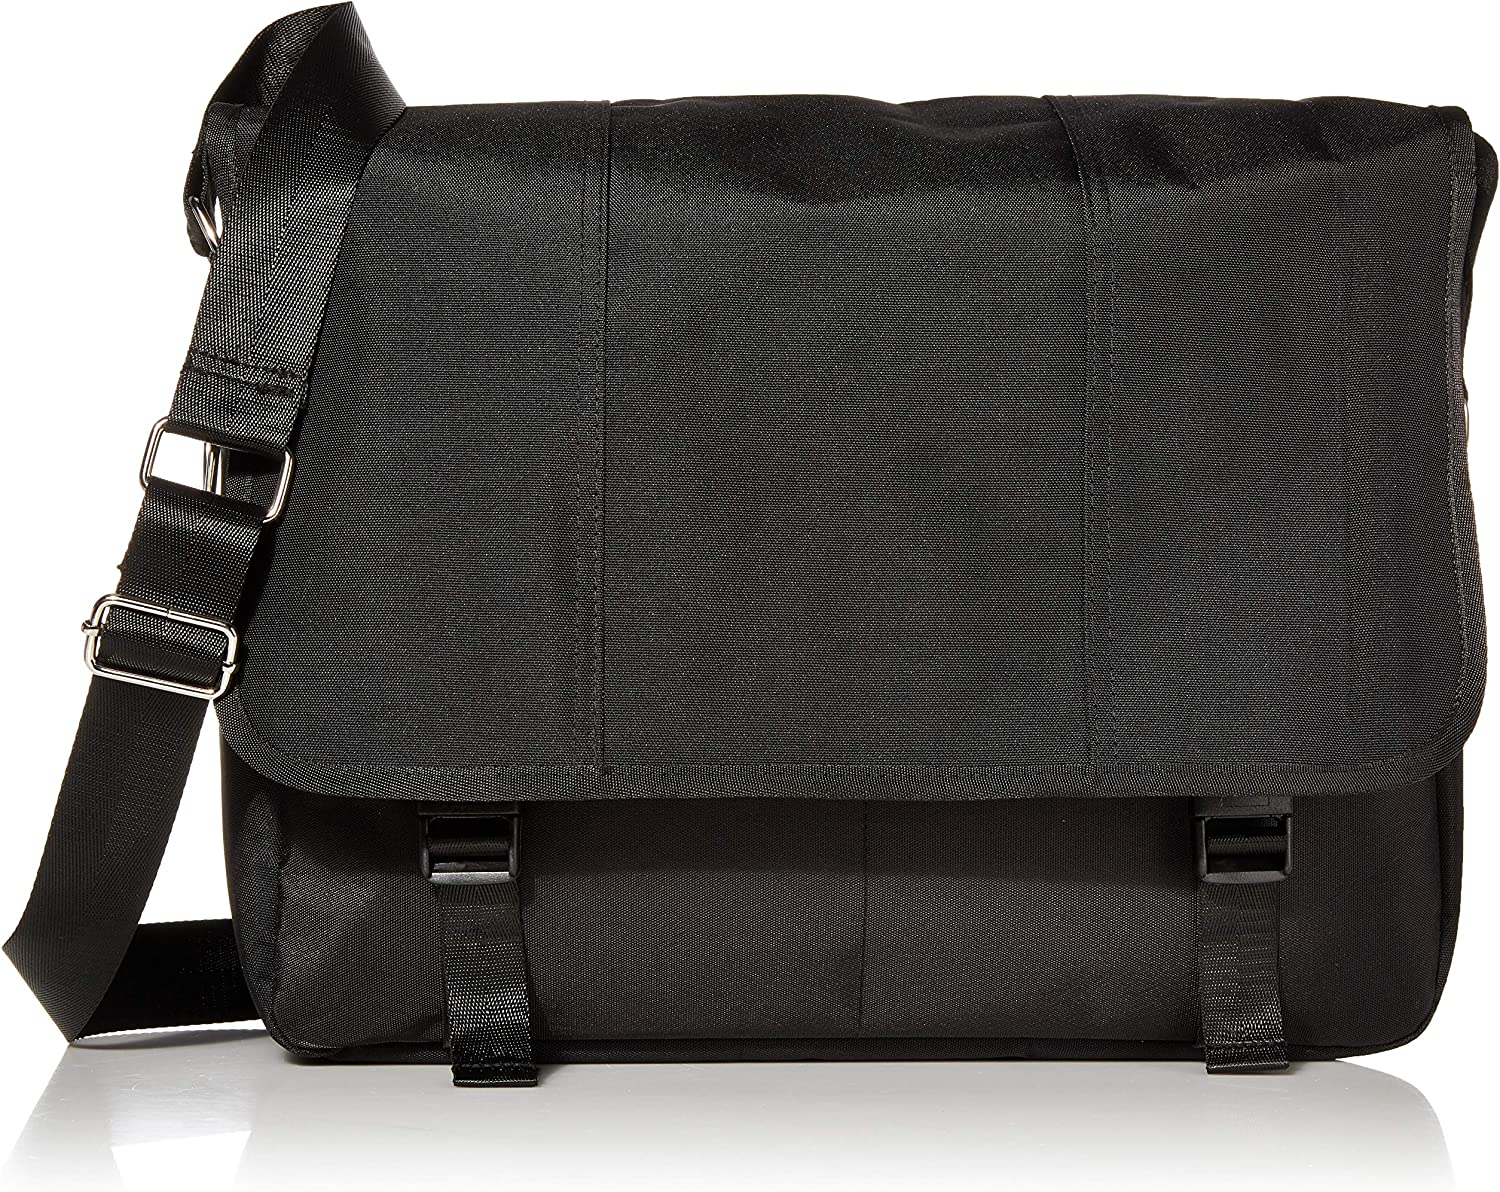 Classic canvas Messenger bag Fashion Luggage bag Shoulder Laptop bags for All purpose use